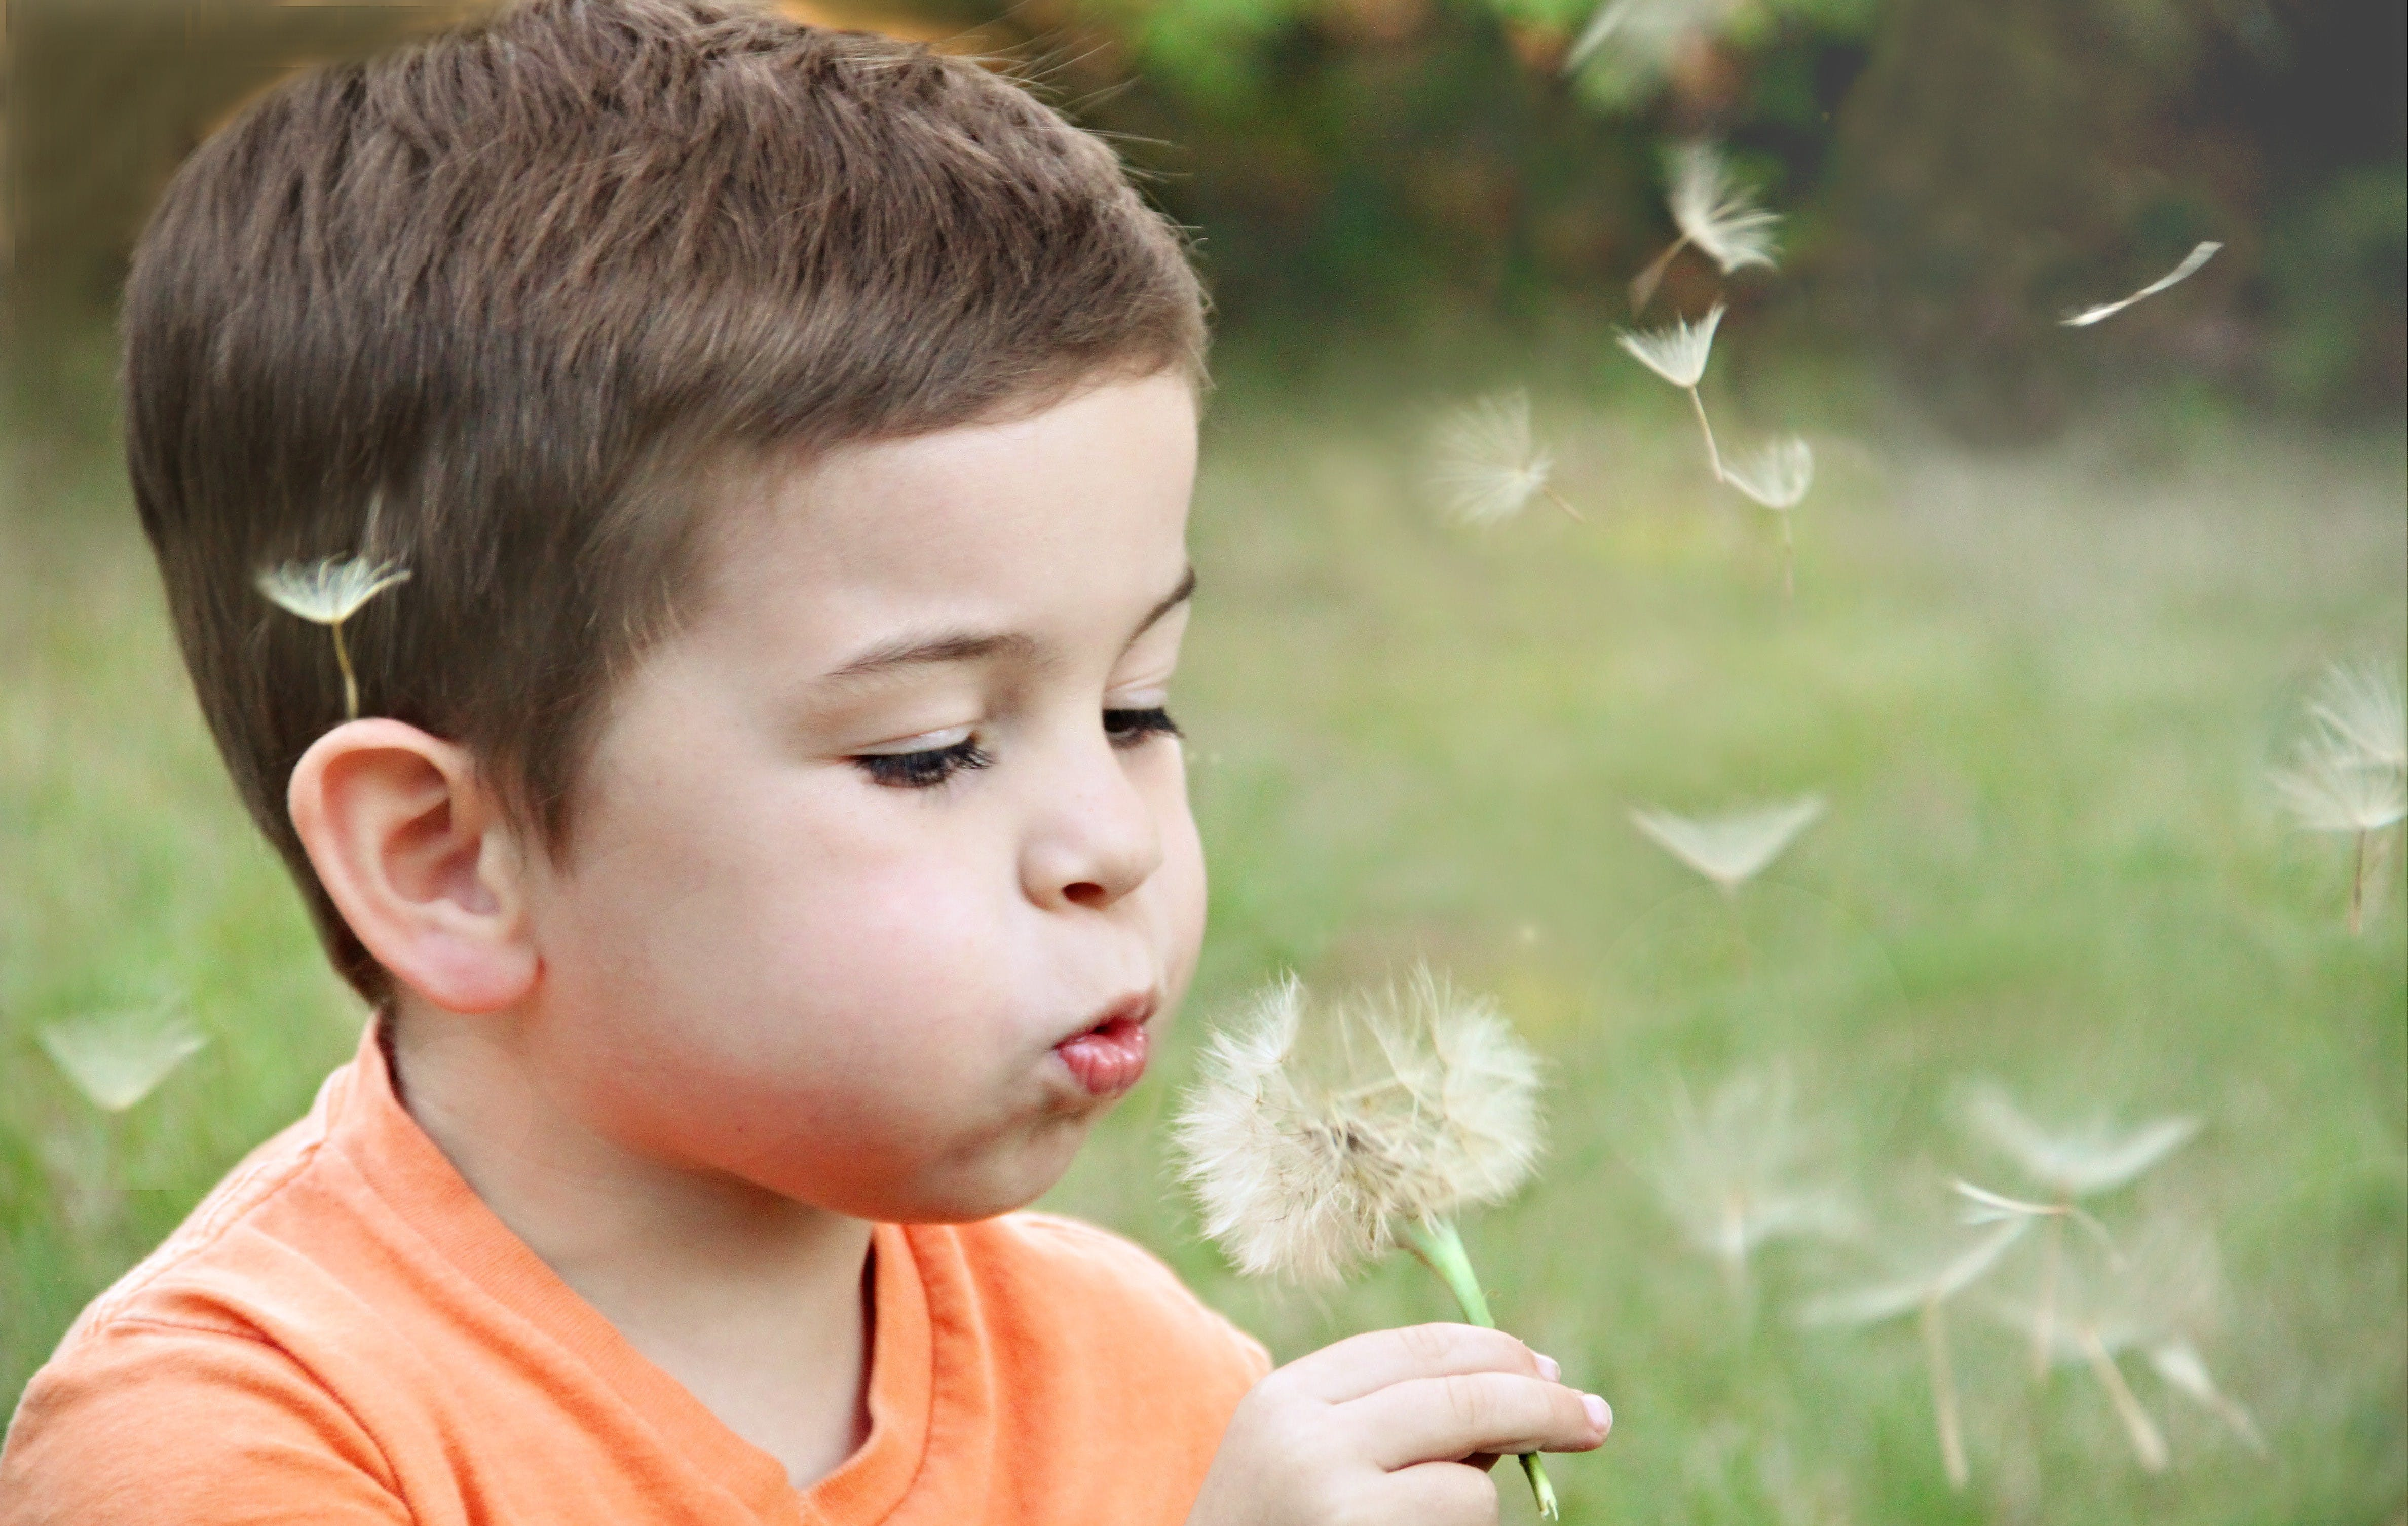 Boy Wearing Orange Shirt Blowing on Dandelion